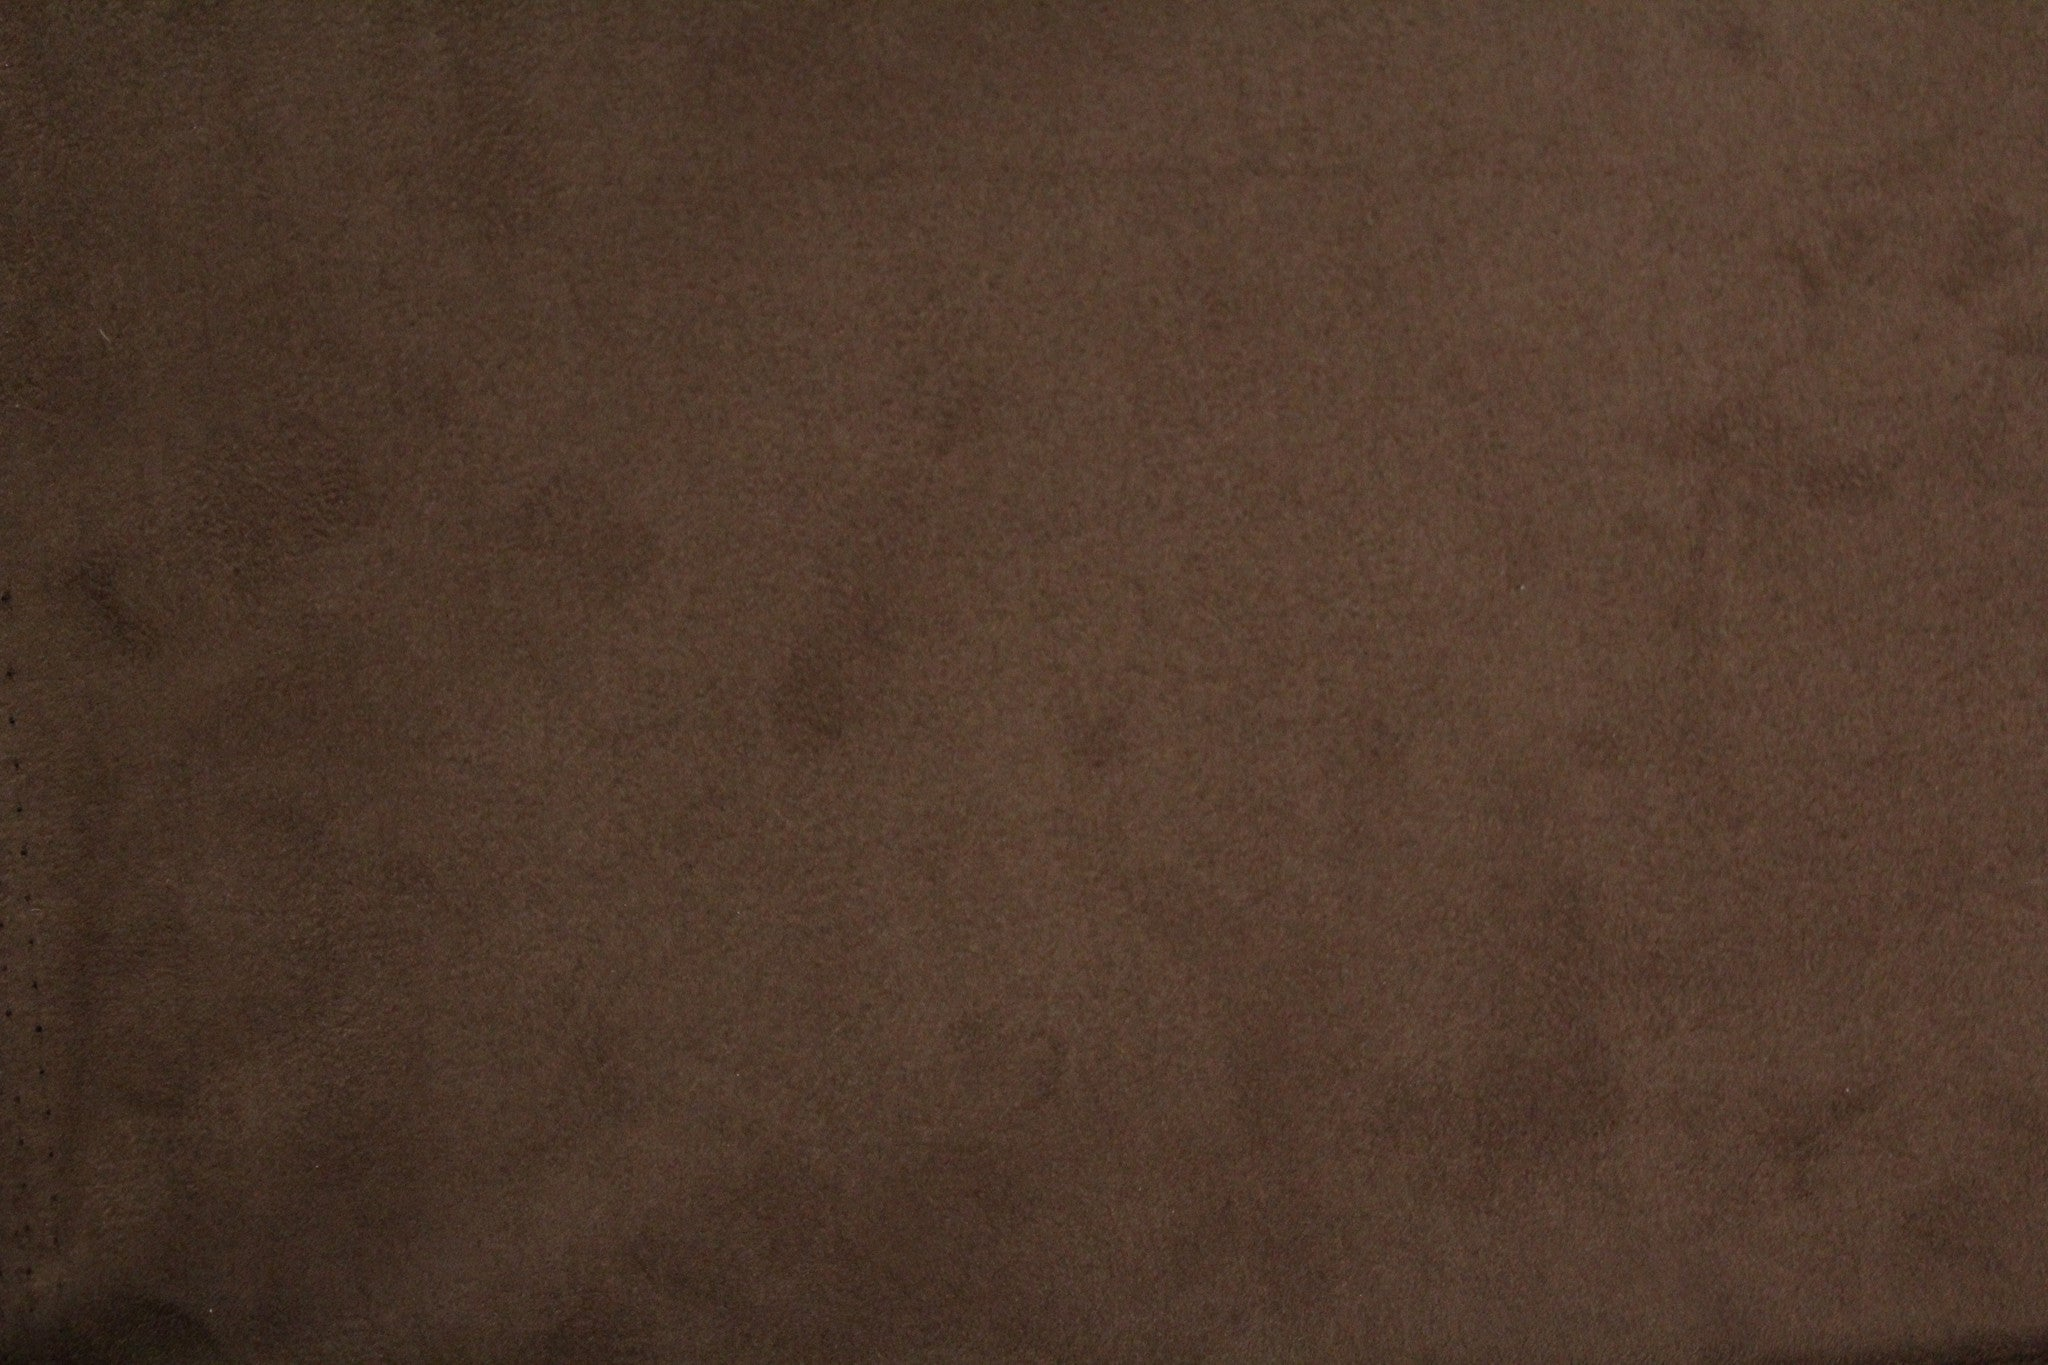 Faux suede upholstery fabric endure fabrics endure fabrics for Suede fabric